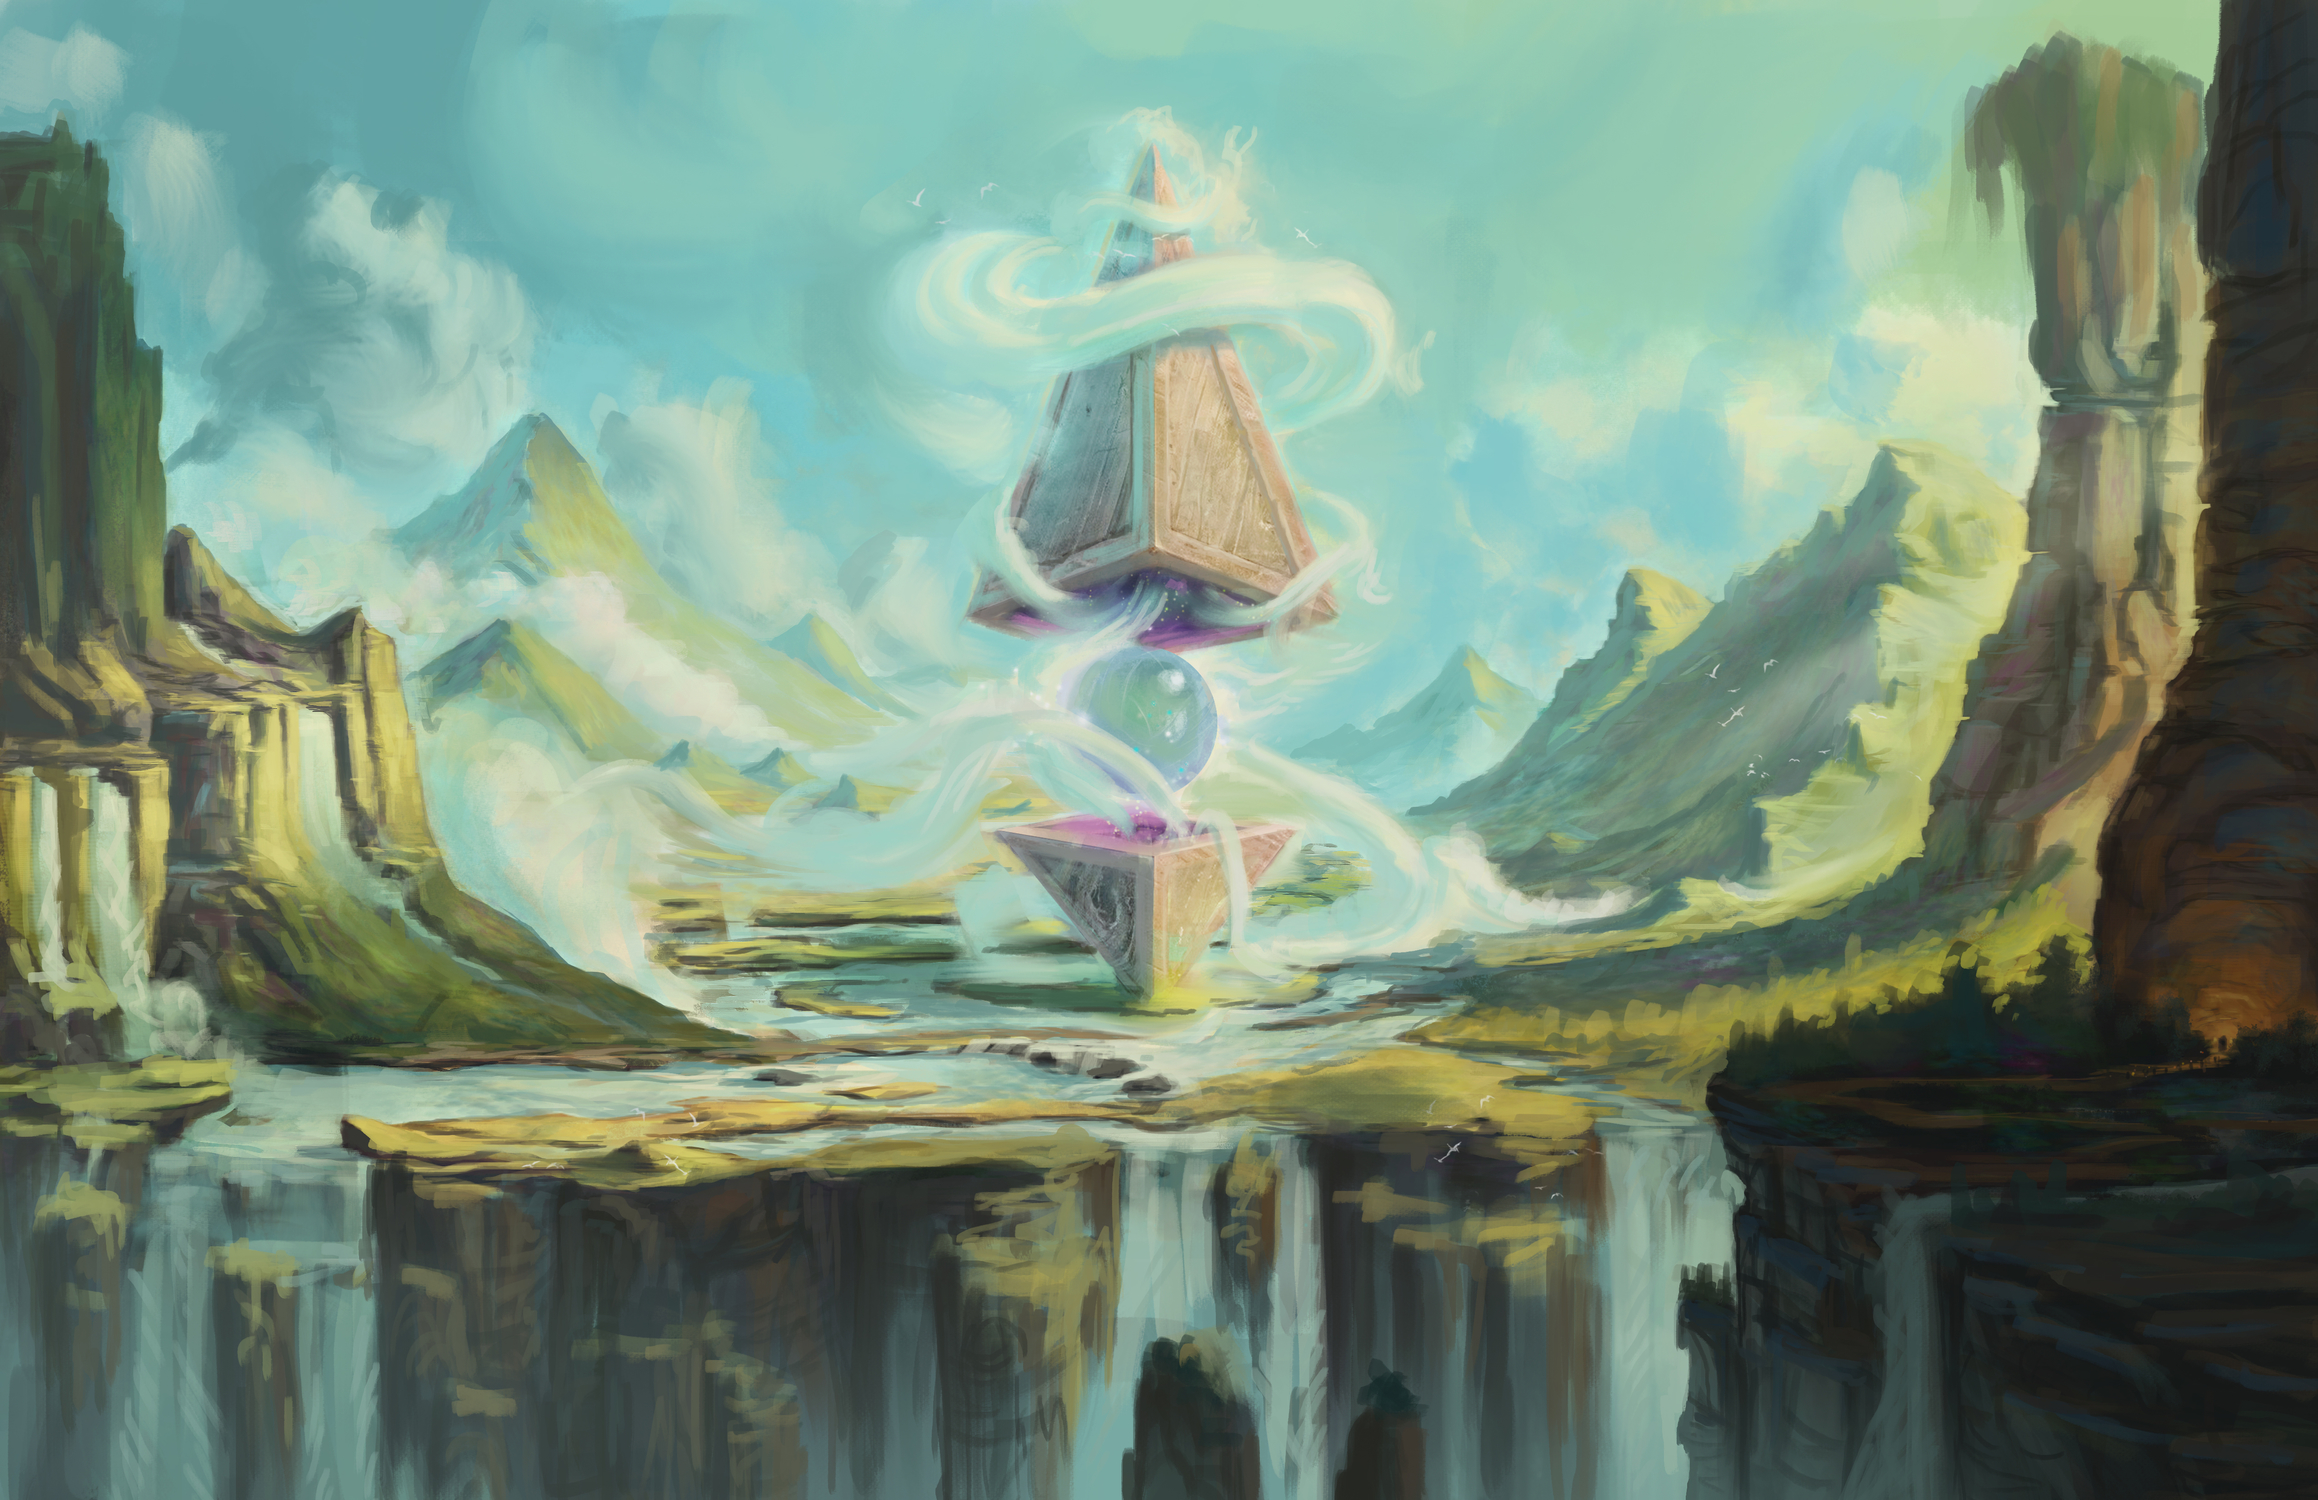 Temple of Air Artwork by chase henson